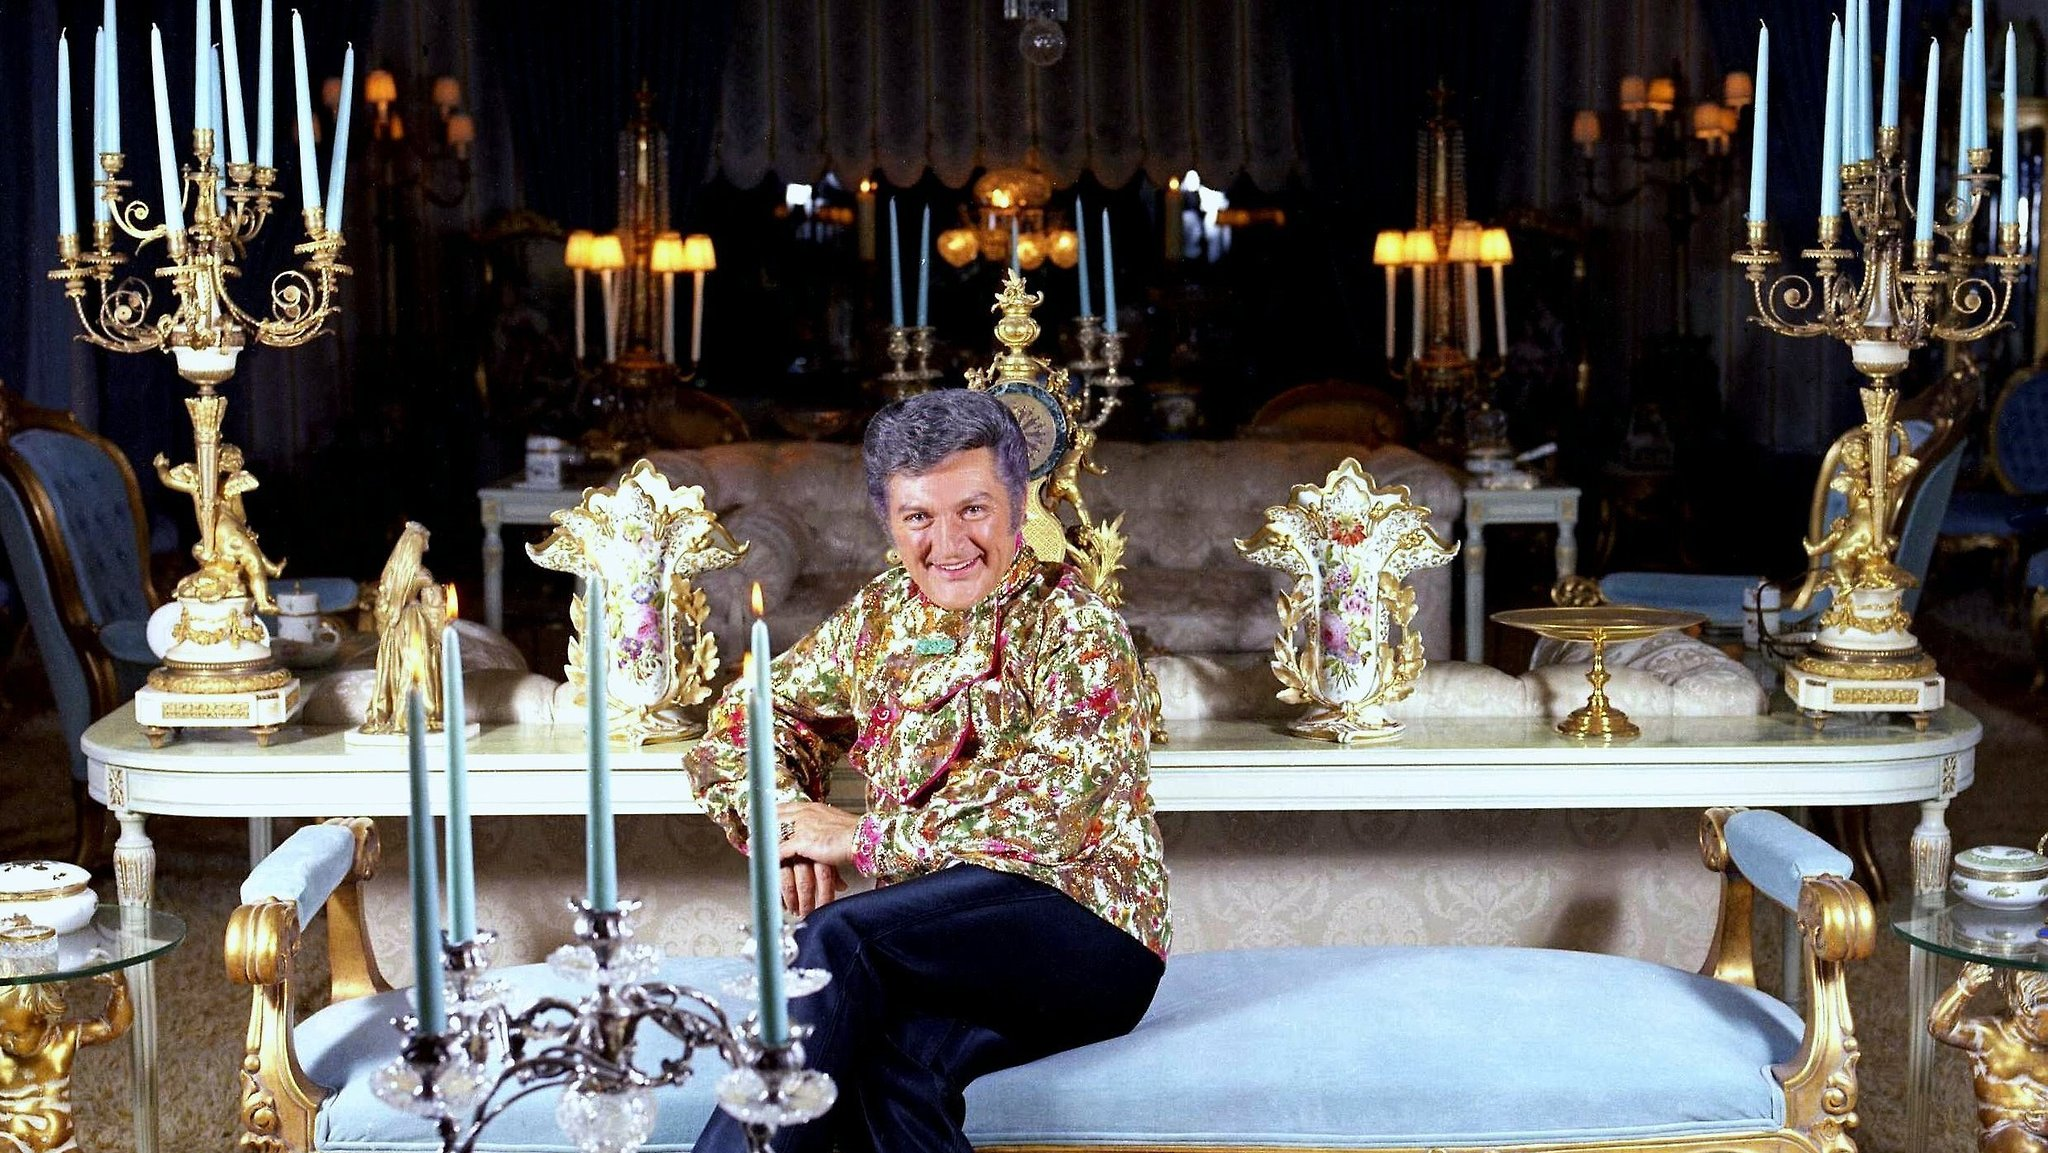 liberace death on youtube - 508×400